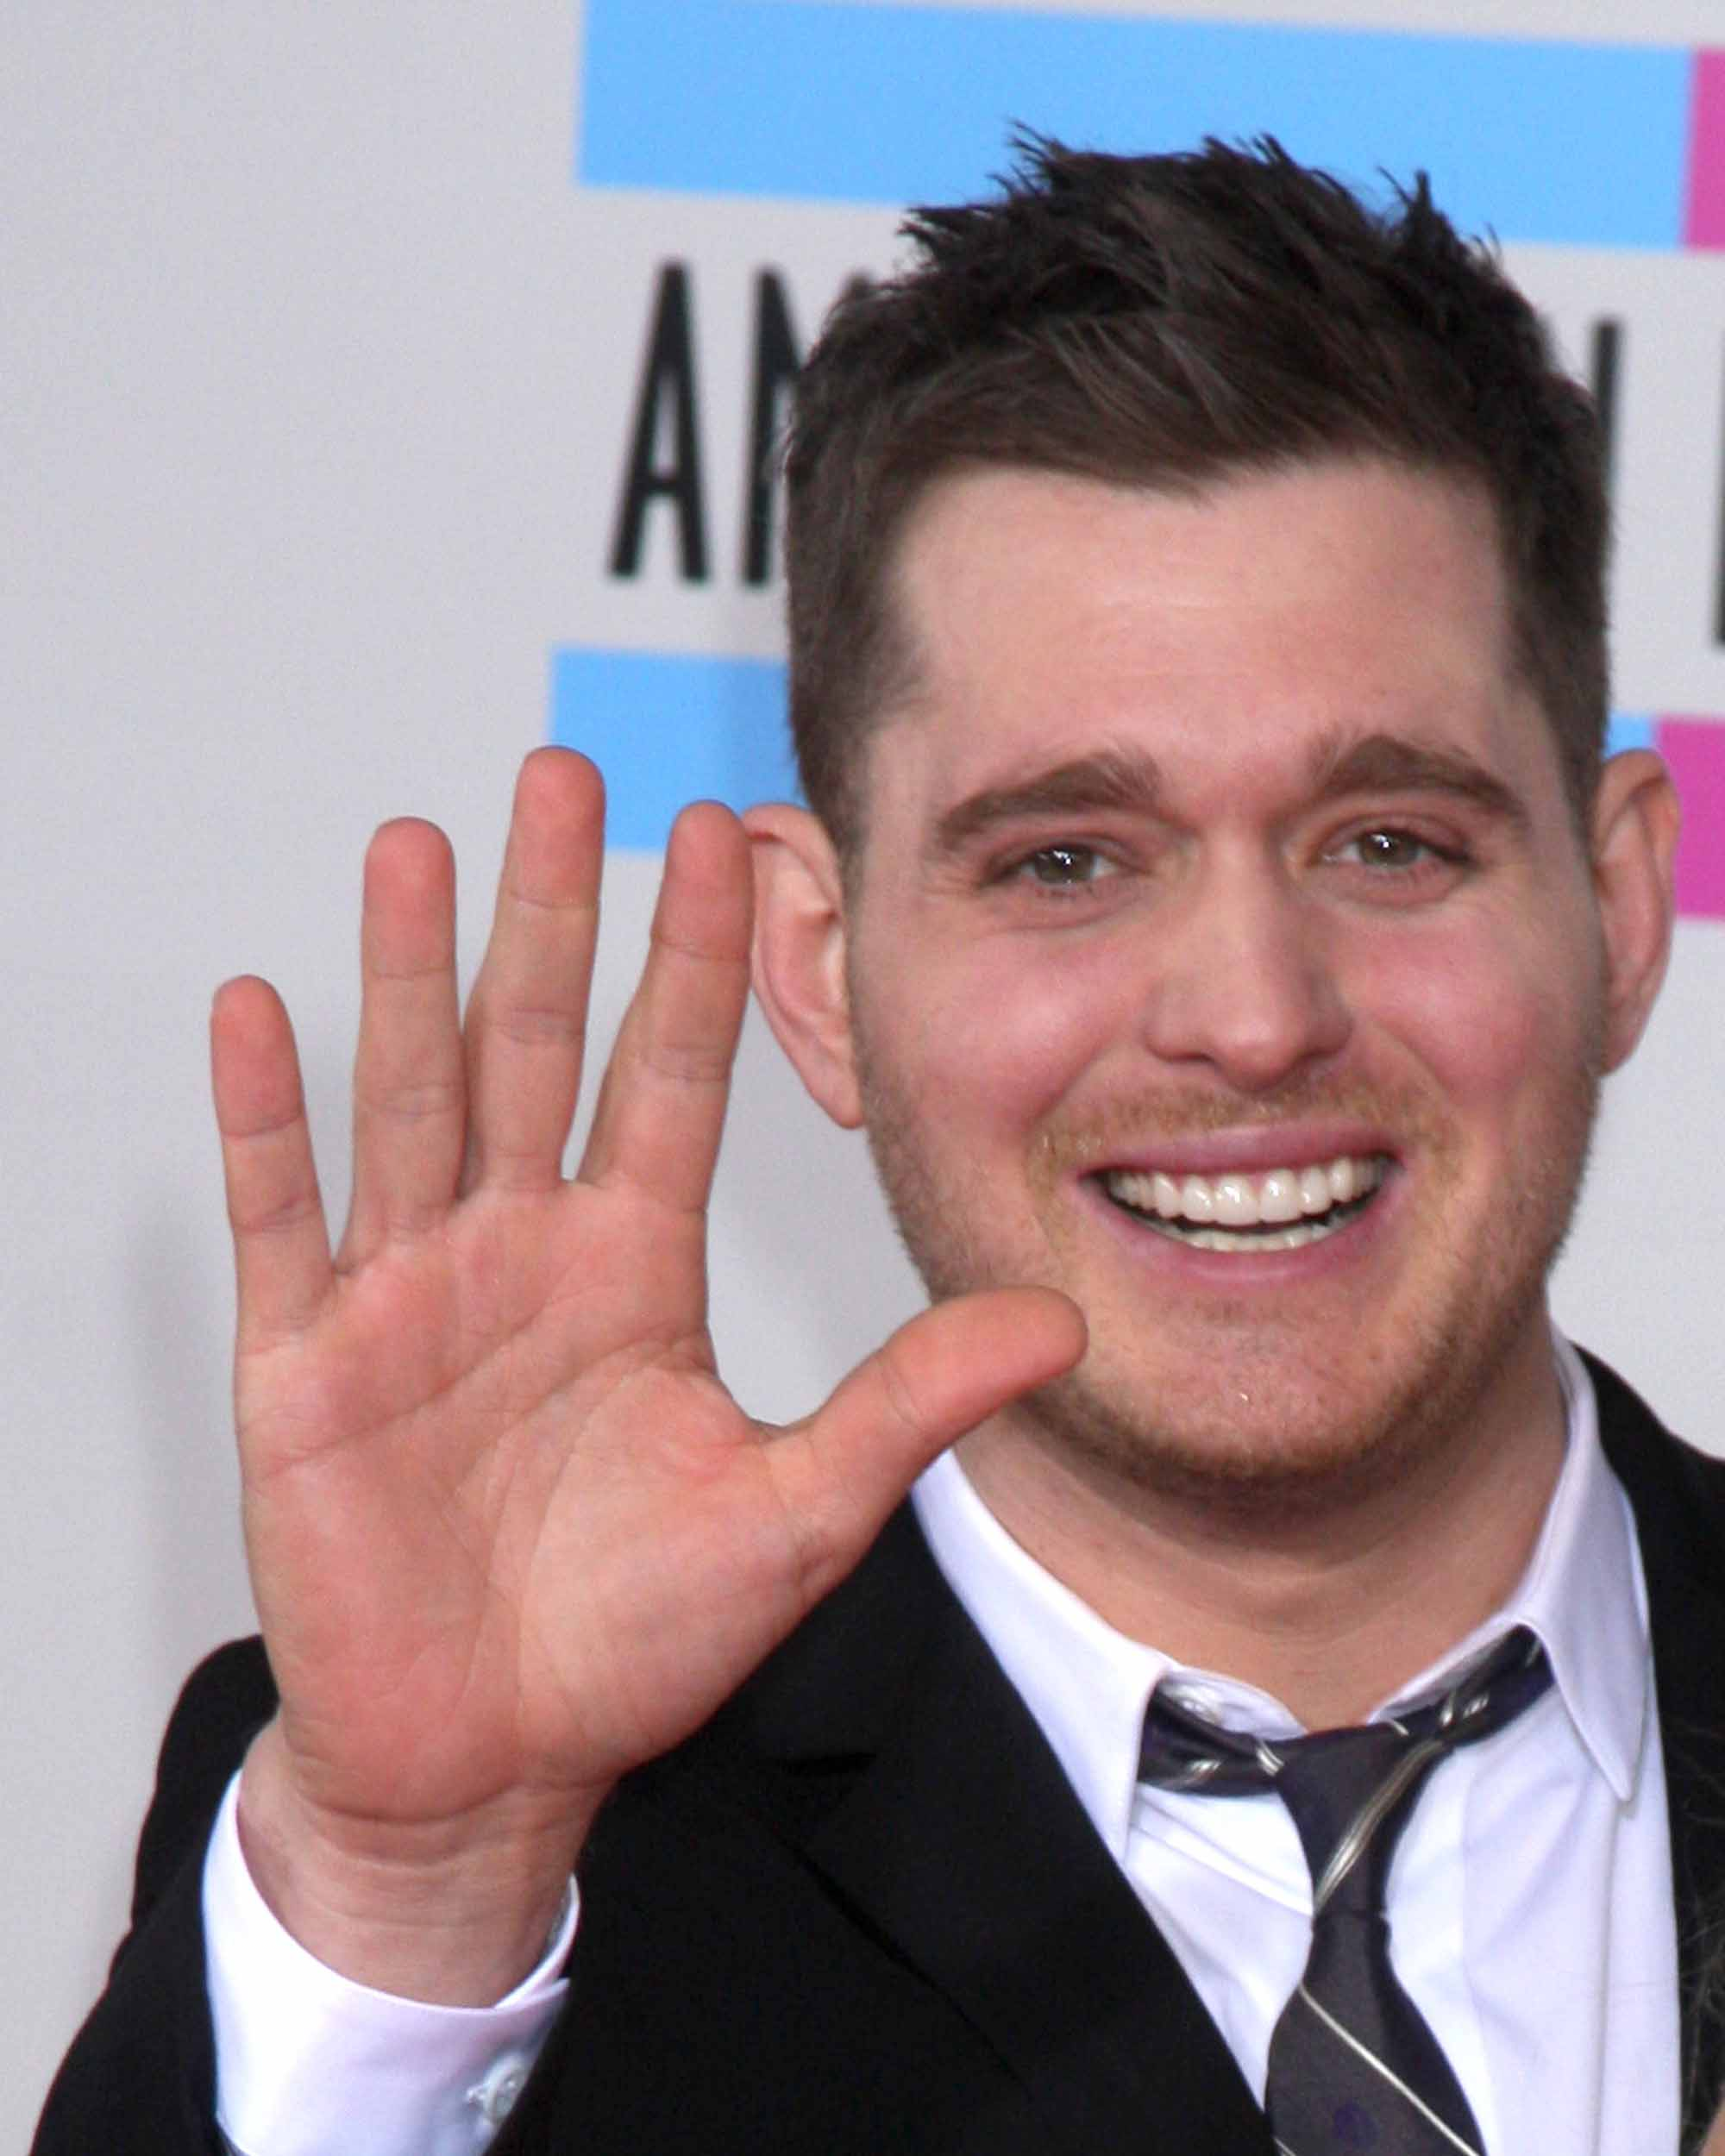 michael buble - photo #43